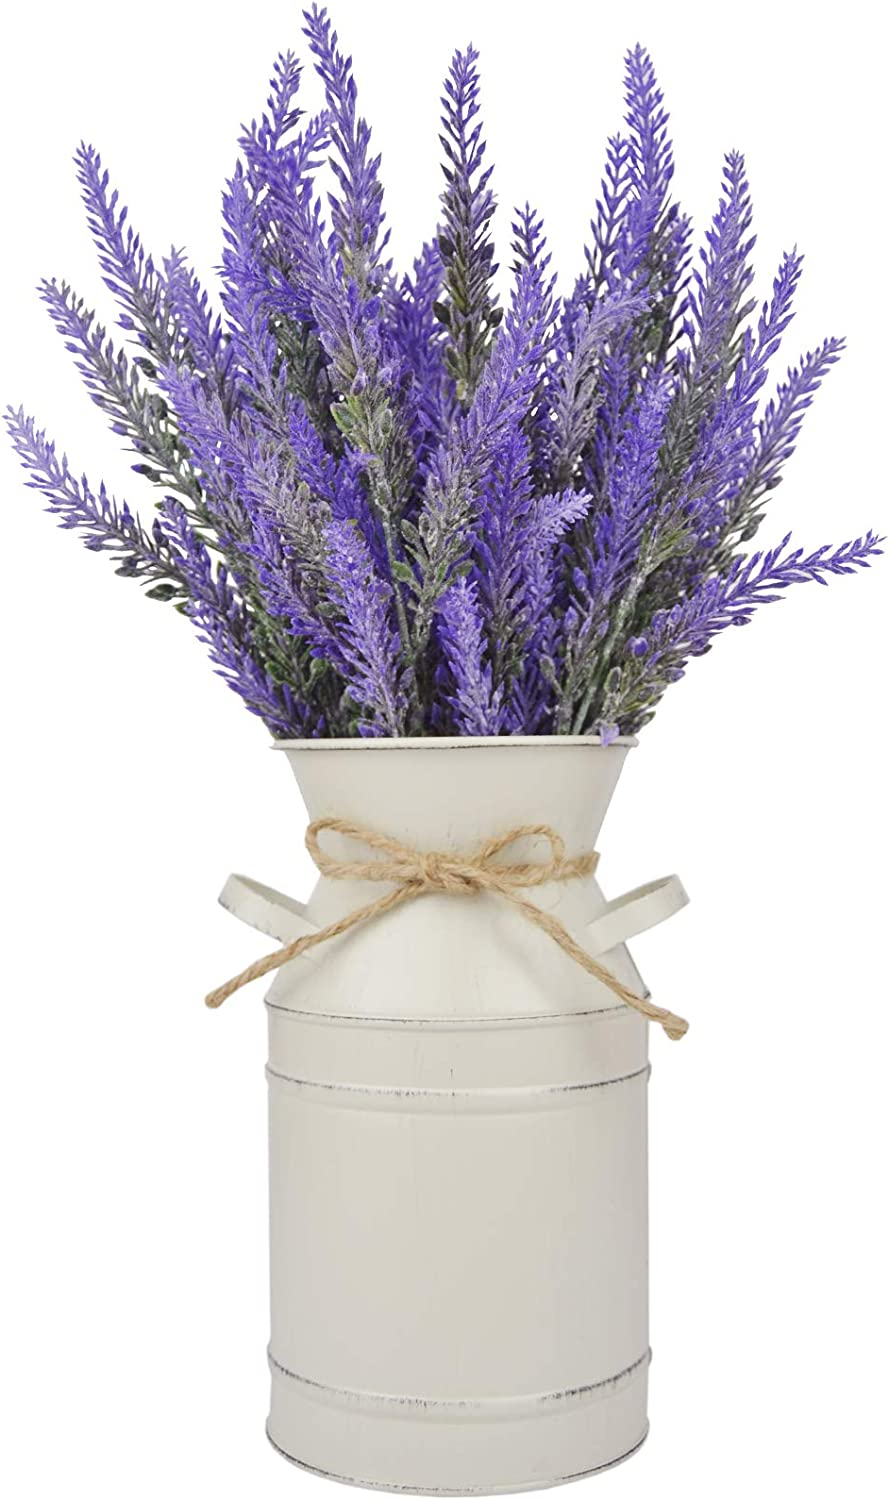 LESEN Farmhouse Decorative Vase with Artificial Flowers Lavender,Rustic Home Decor Metal Milk Can Country Jug for Living Room, Bedroom, Kitchen(Off White)